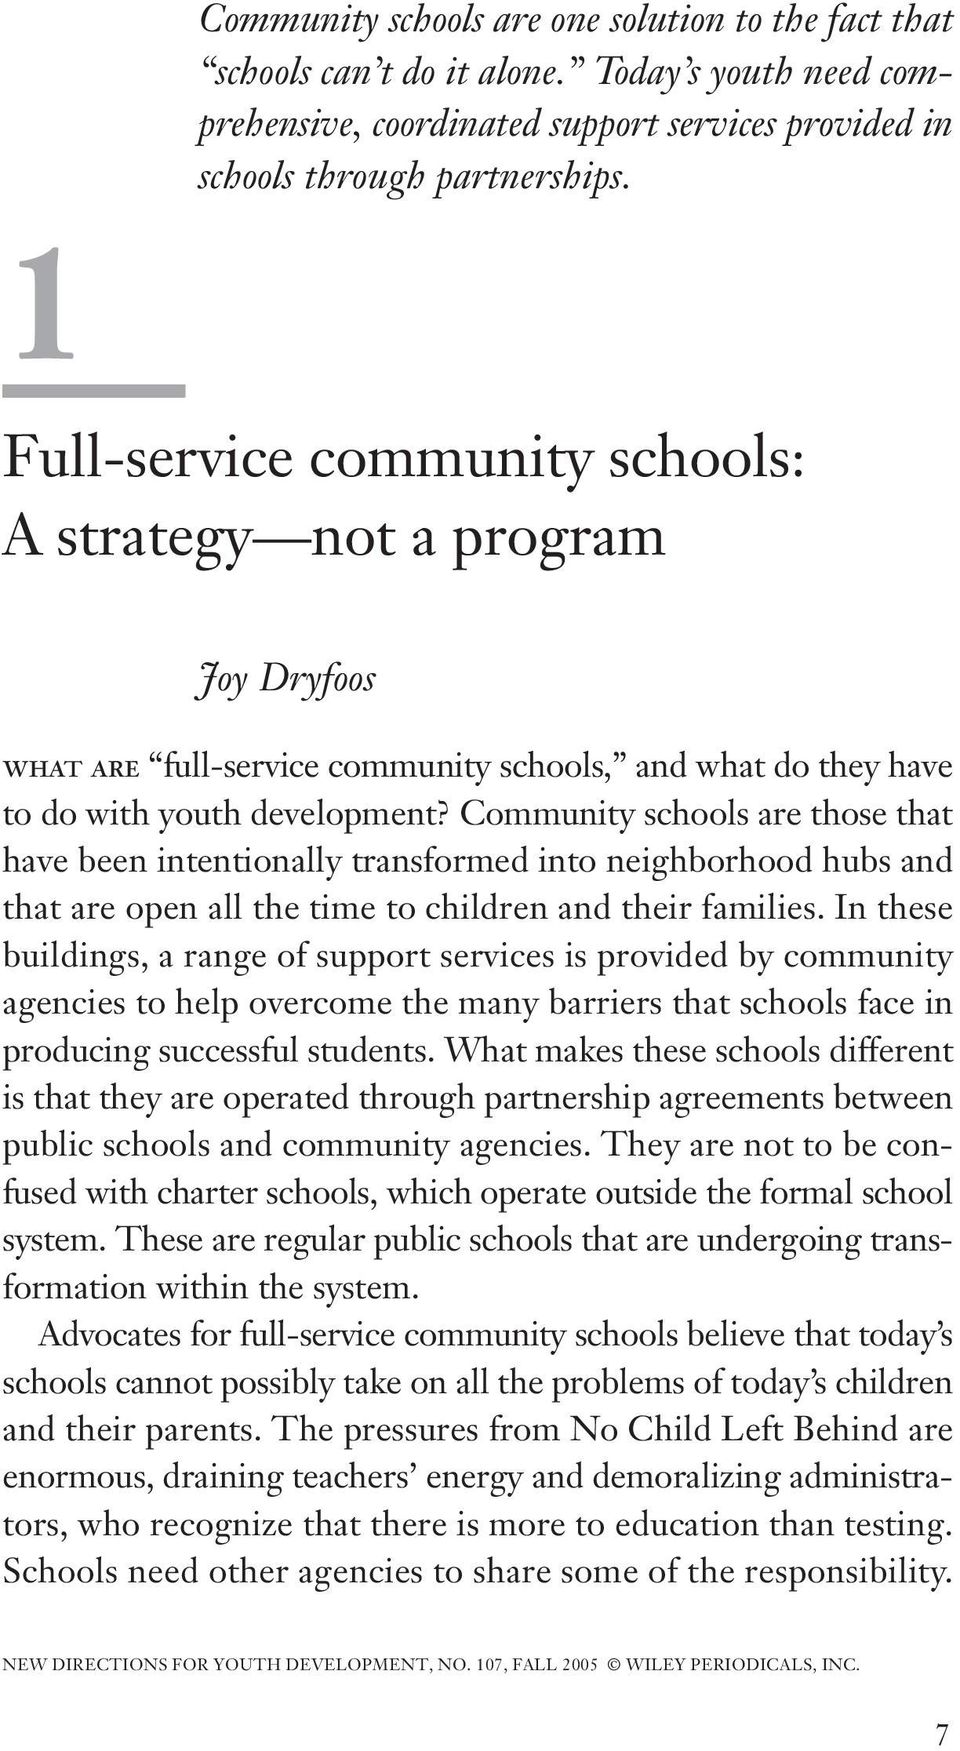 Community schools are those that have been intentionally transformed into neighborhood hubs and that are open all the time to children and their families.